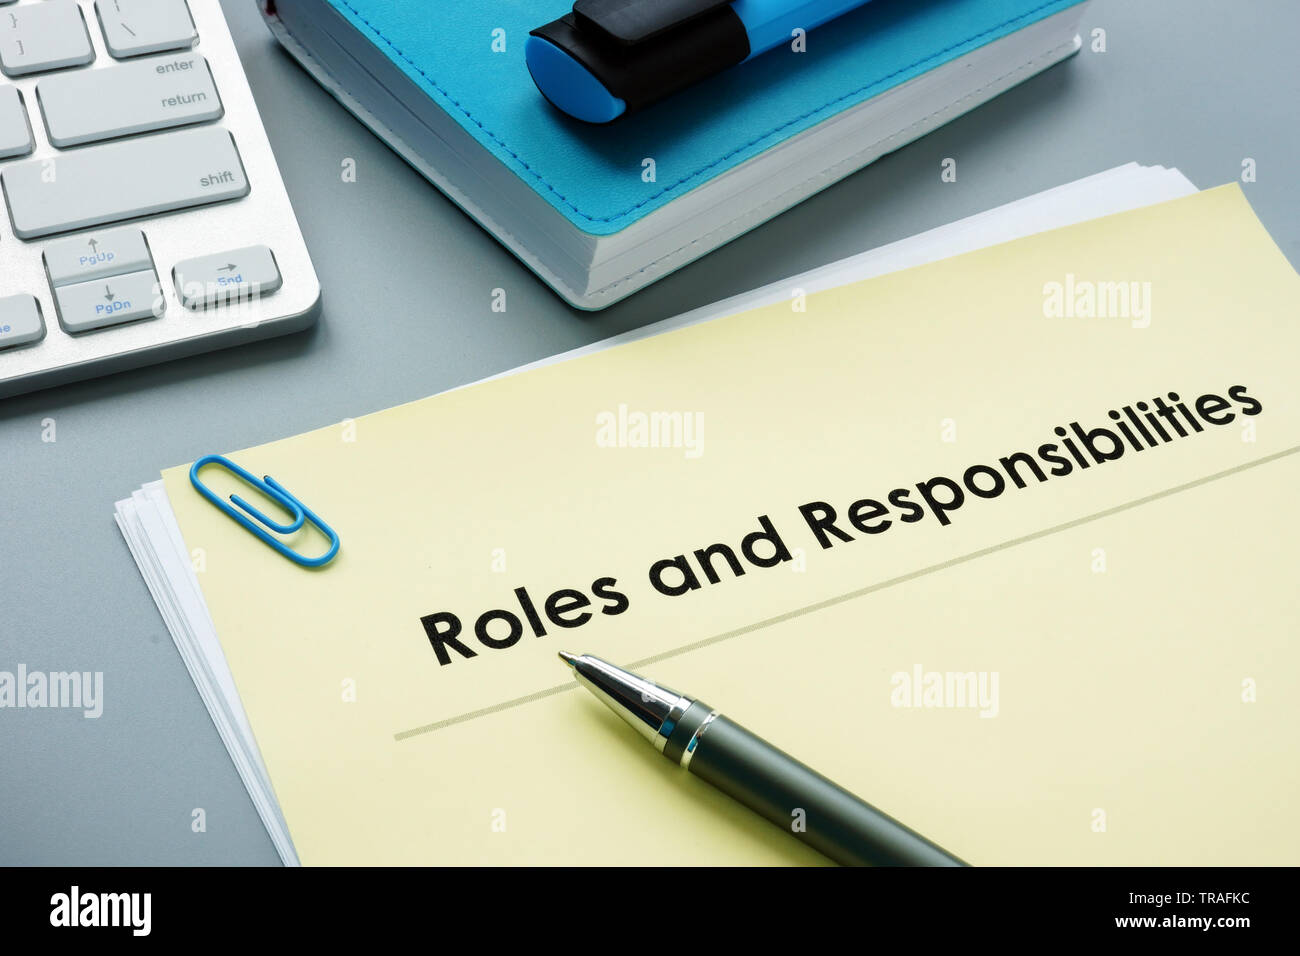 Roles And Responsibilities documents in the office. - Stock Image